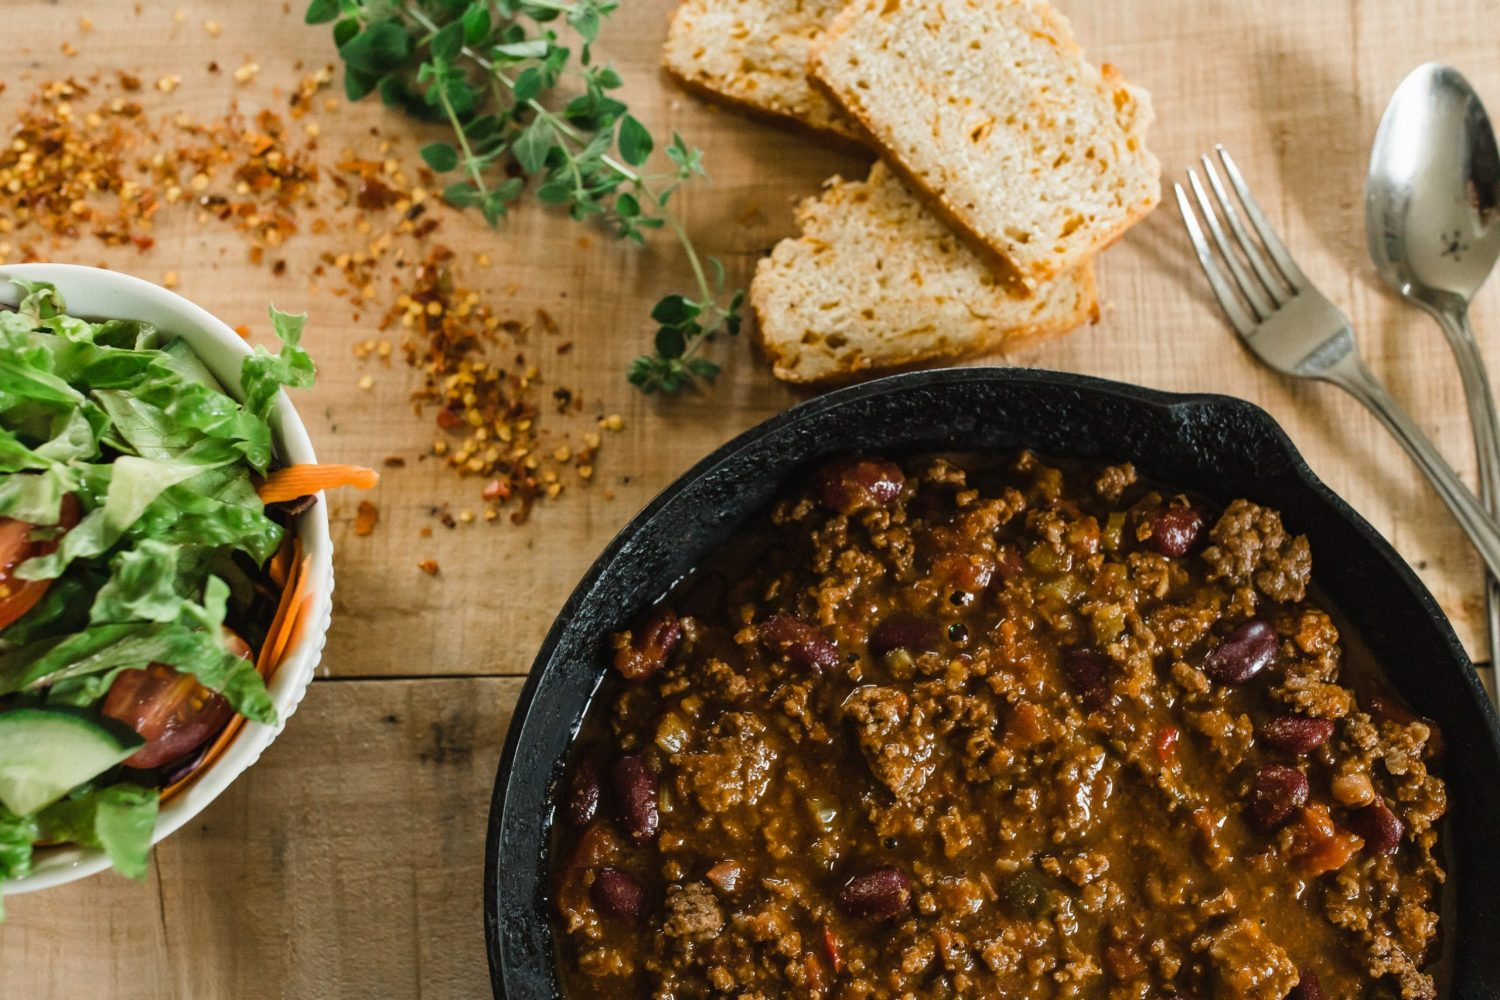 beef chili in cast iron frying pan with garden salad from thats a wrap catering in peterborough ontario by ontario food photographer heather doughty photography